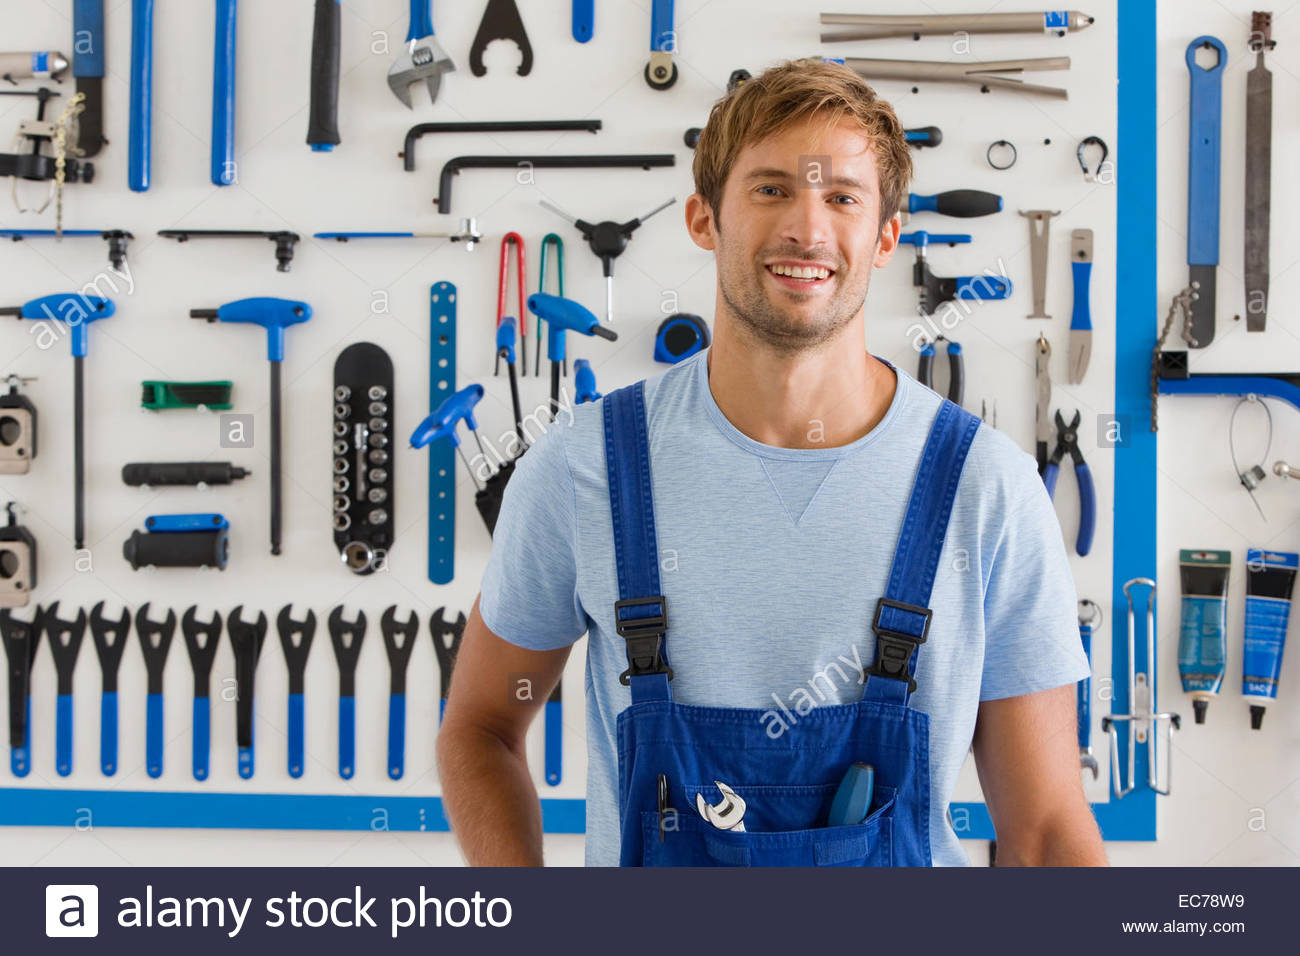 Technicien Cycle en atelier smiling at camera Photo Stock